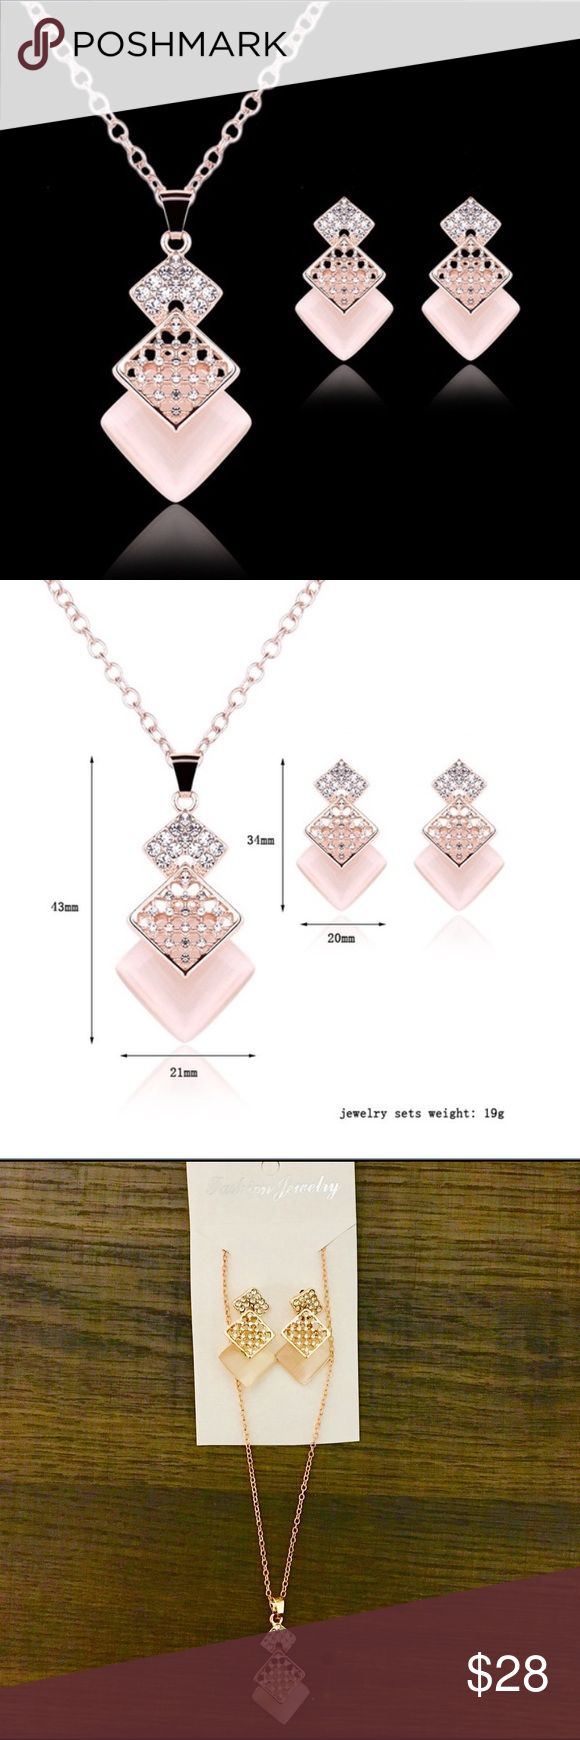 Rose Glam Femme Jewelry Set NEW! Rose gold plated necklace and earrings set. Zinc alloy, rose gold plated, cubic zirconia. Wear casually or accessorize a dressy look. ✨ Jewelry